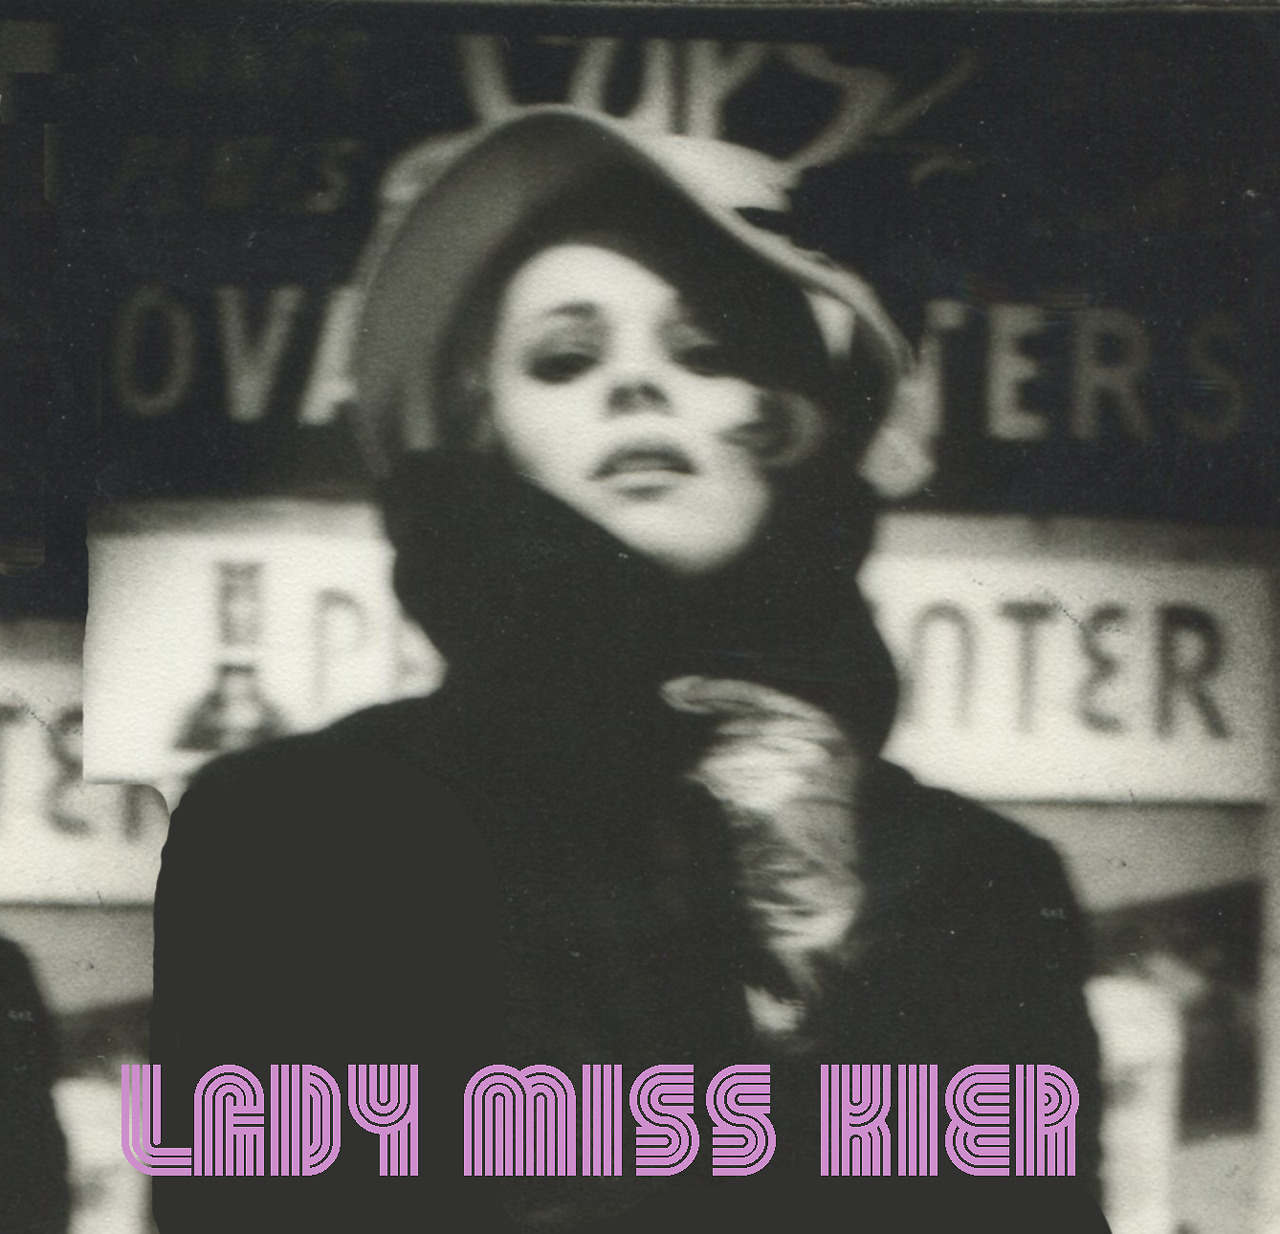 let's change the world- lady miss kier…www.ladykier.com     http://www.mixcloud.com/ladykier/     https://www.facebook.com/pages/miss-Lady-Kier/296808489716?sk=wall